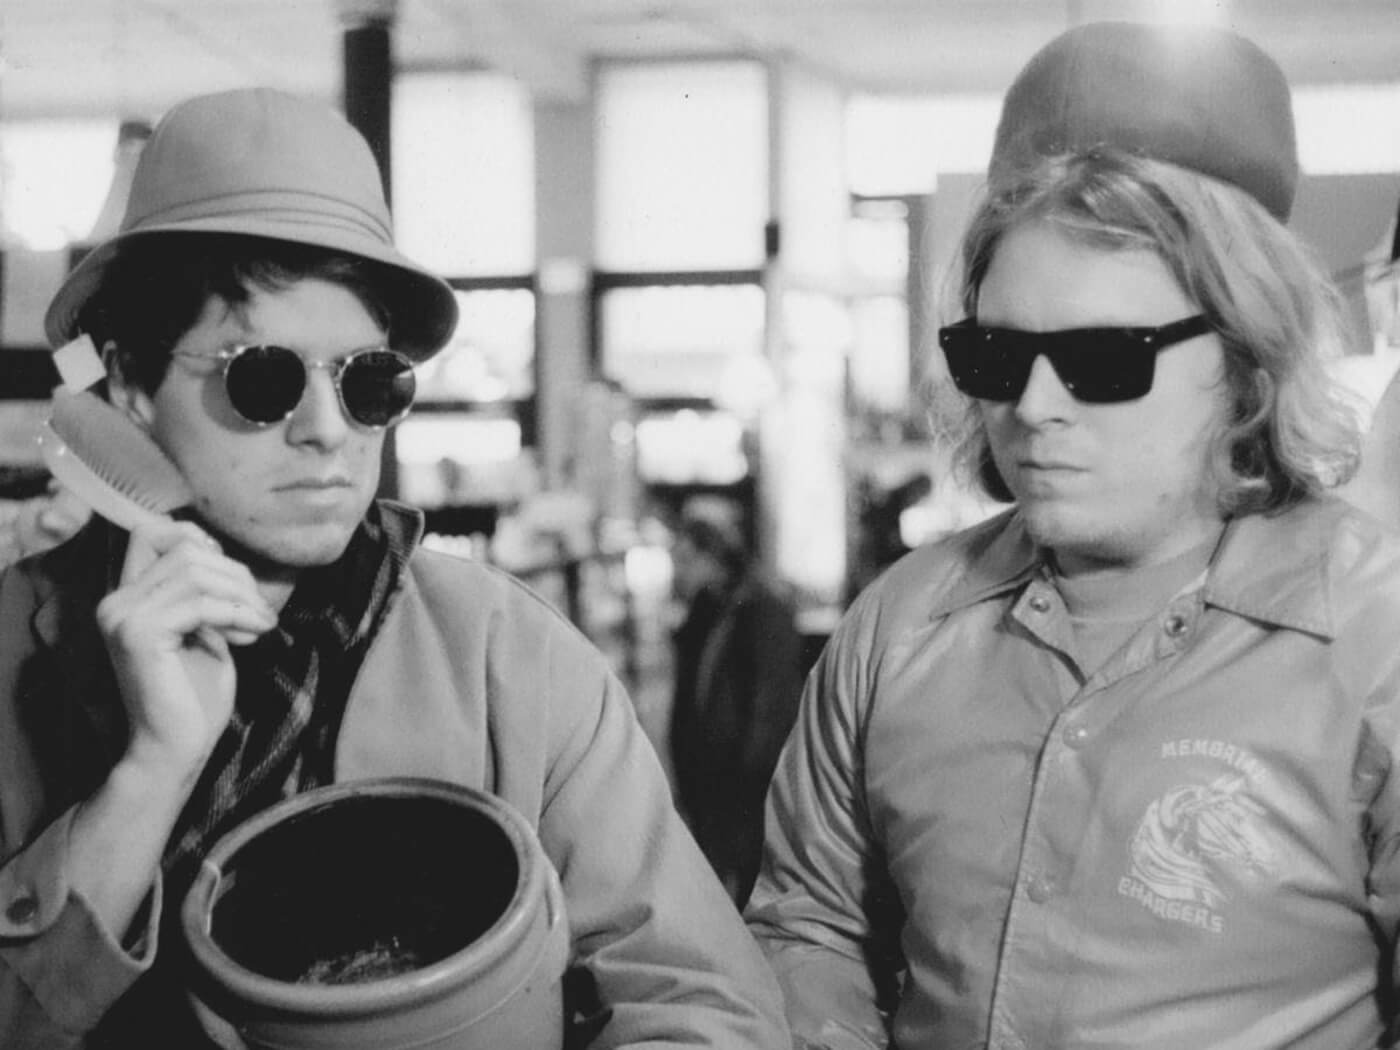 Hear the new single by Ty Segall and Wand's Cory Hanson